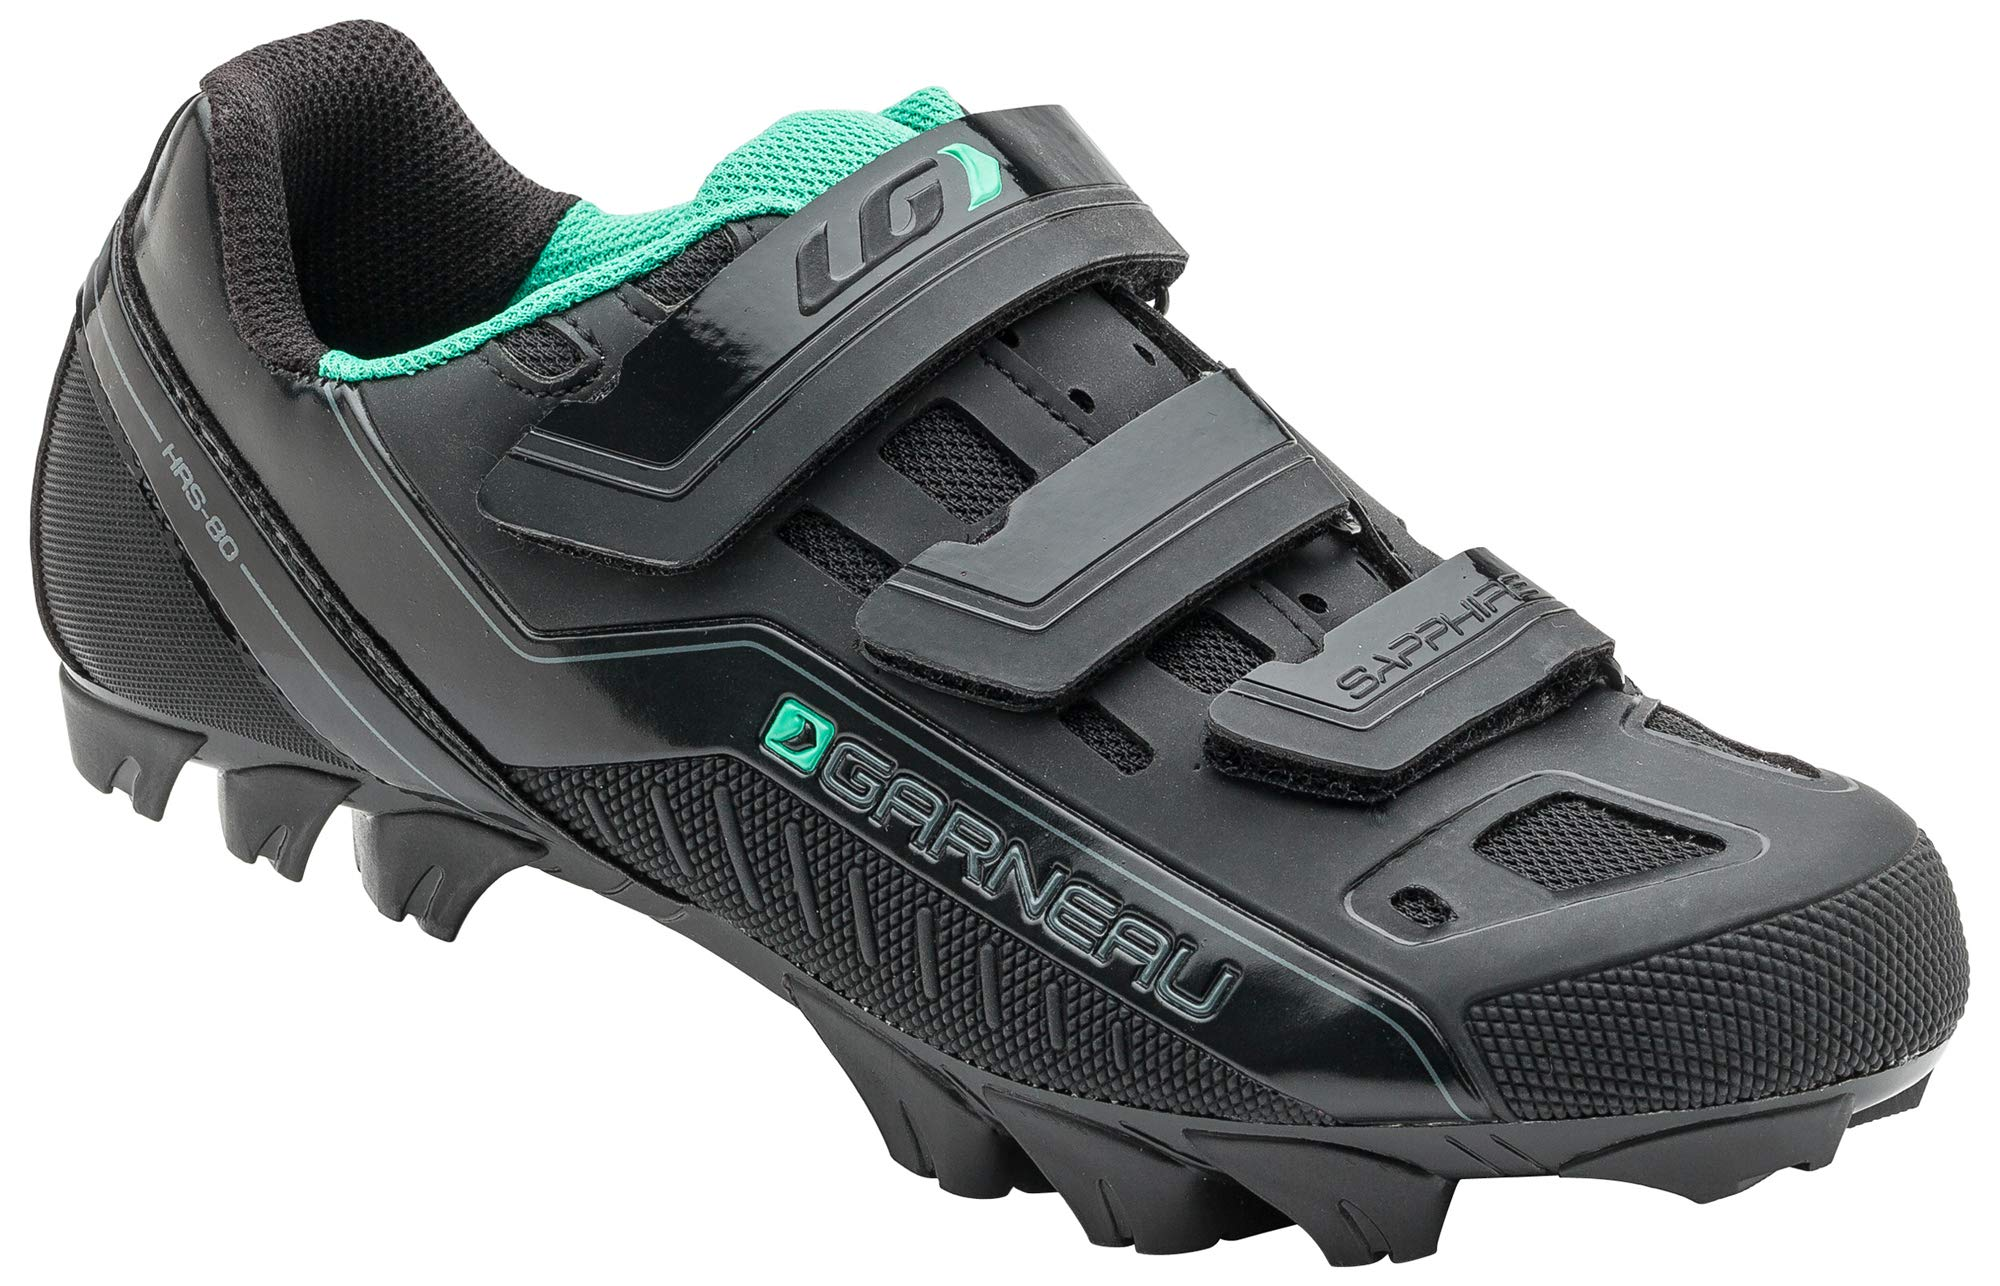 Louis Garneau Women's Sapphire MTB Bike Shoes, Black, US (10), EU (41) by Louis Garneau